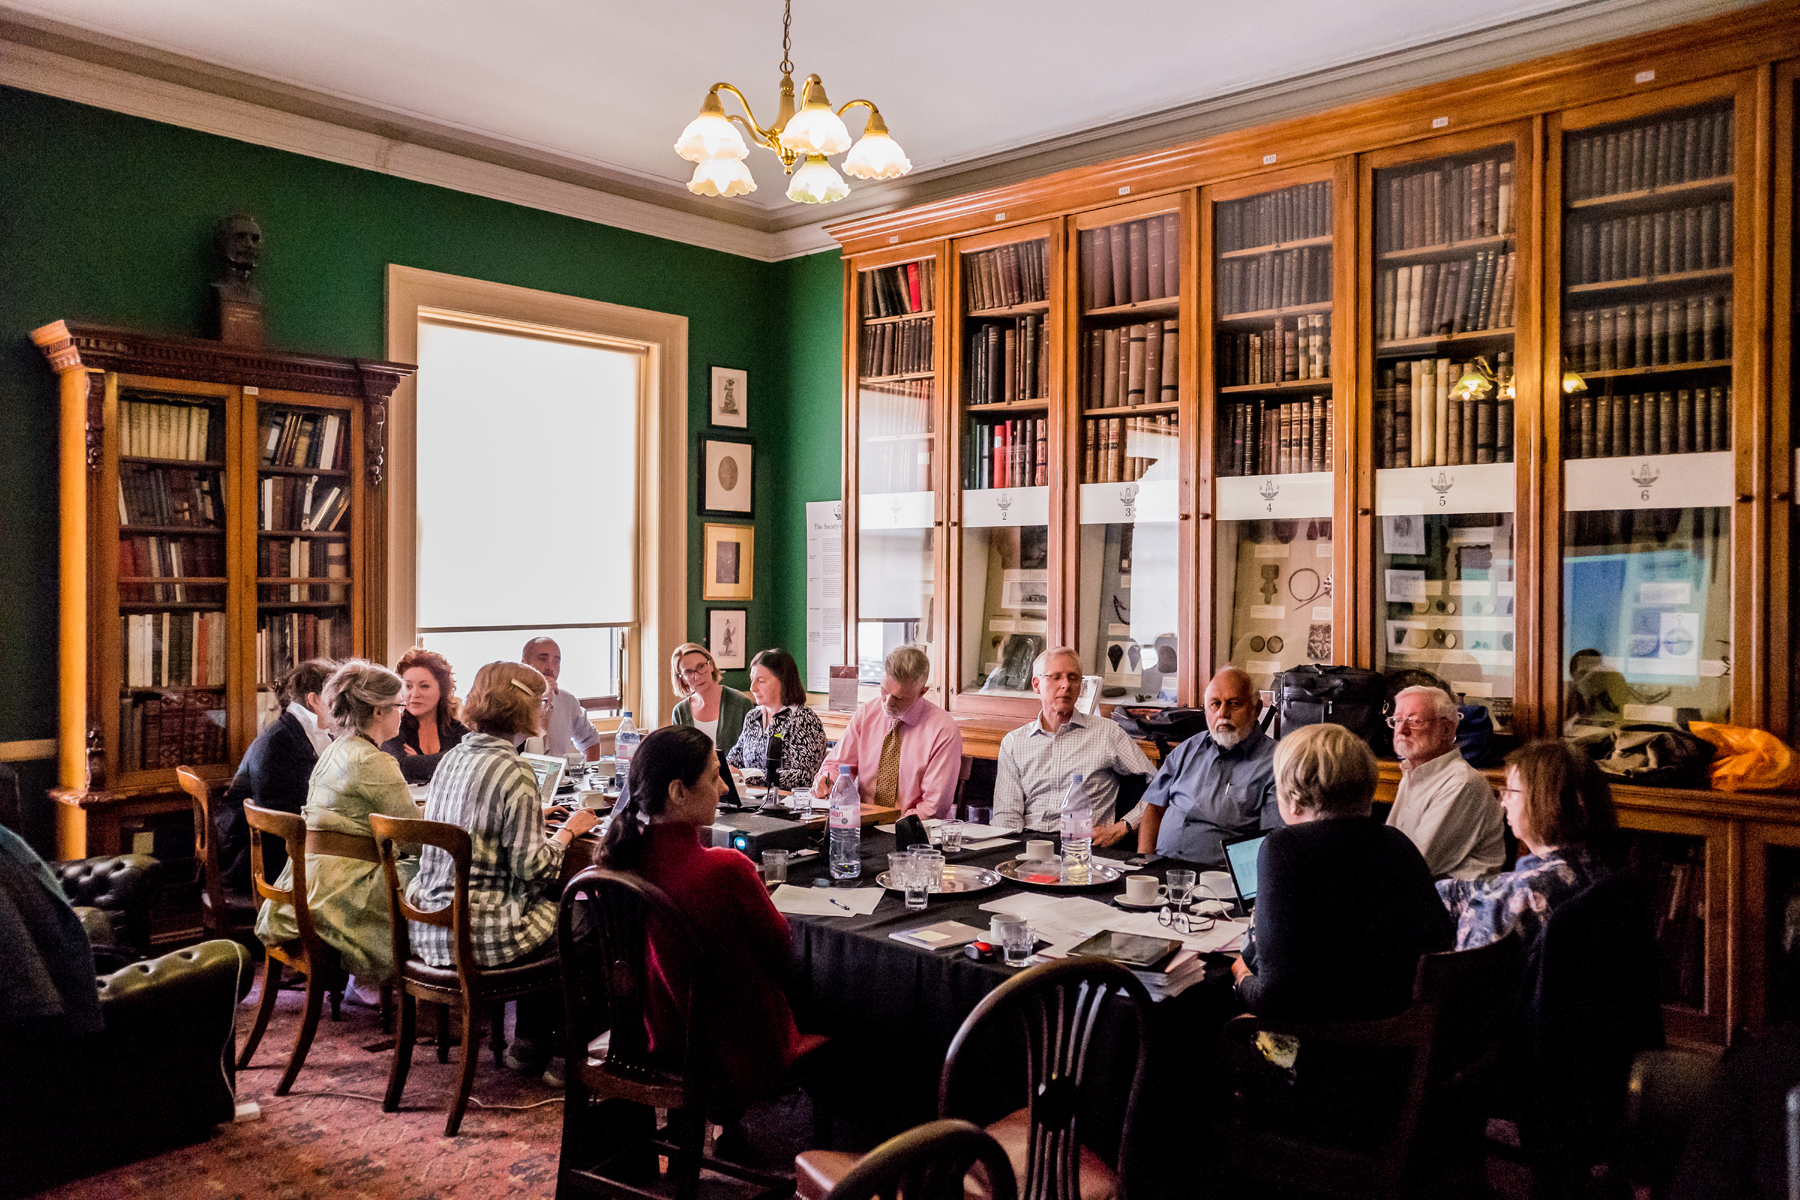 IIC Council members meeting this past May in London at the Society of Antiquaries. Image © International Institute for Conservation of Historic and Artistic Works